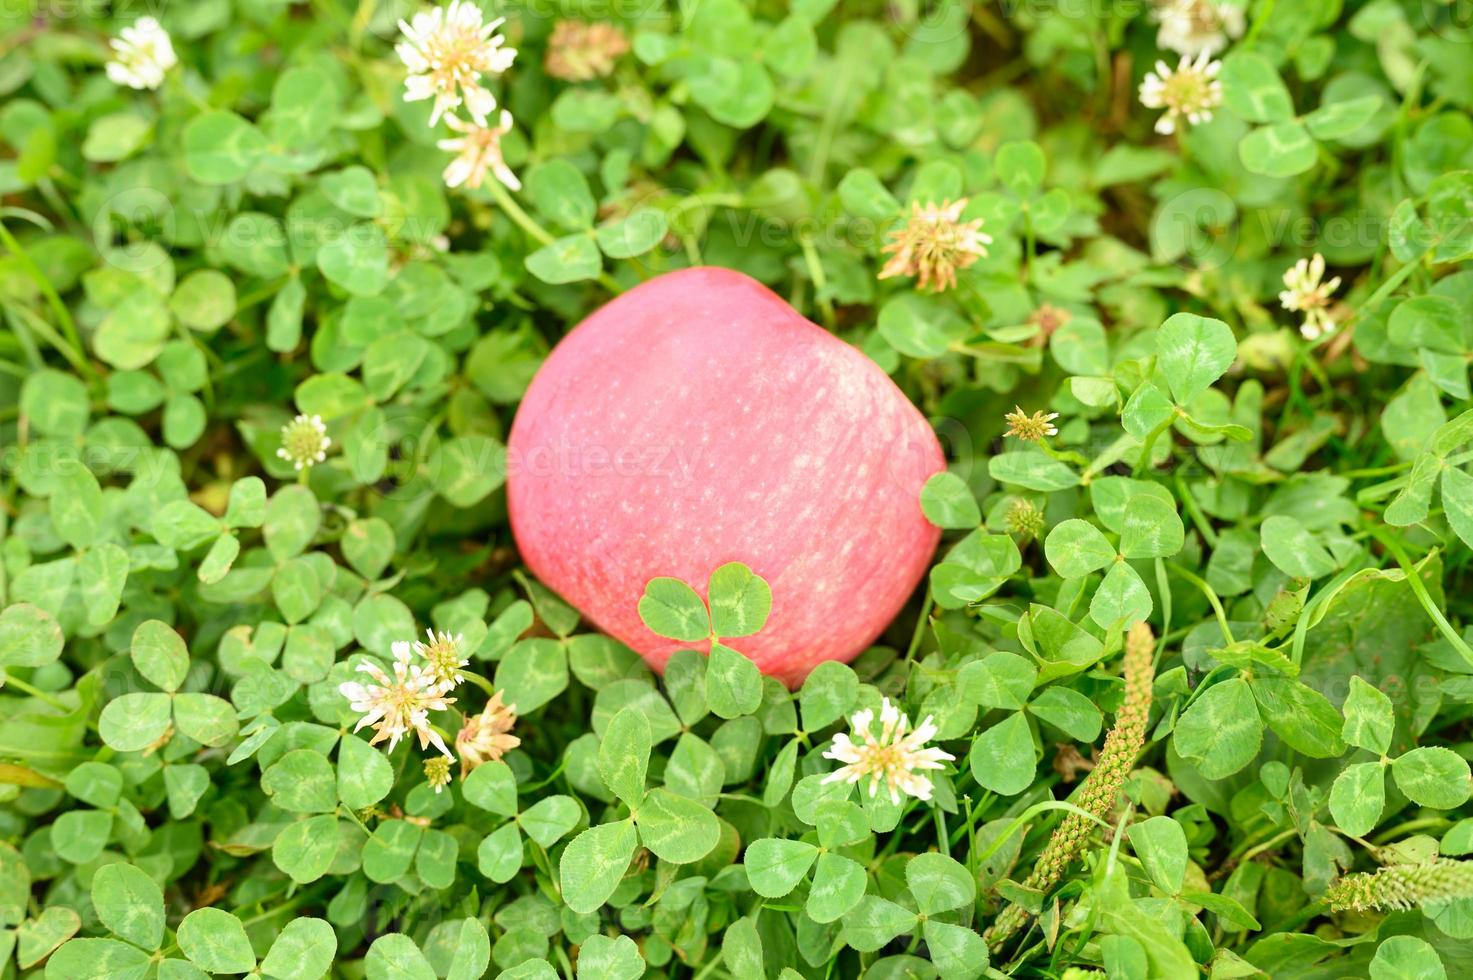 Red ripe apple with a natural white coating on the green grass photo